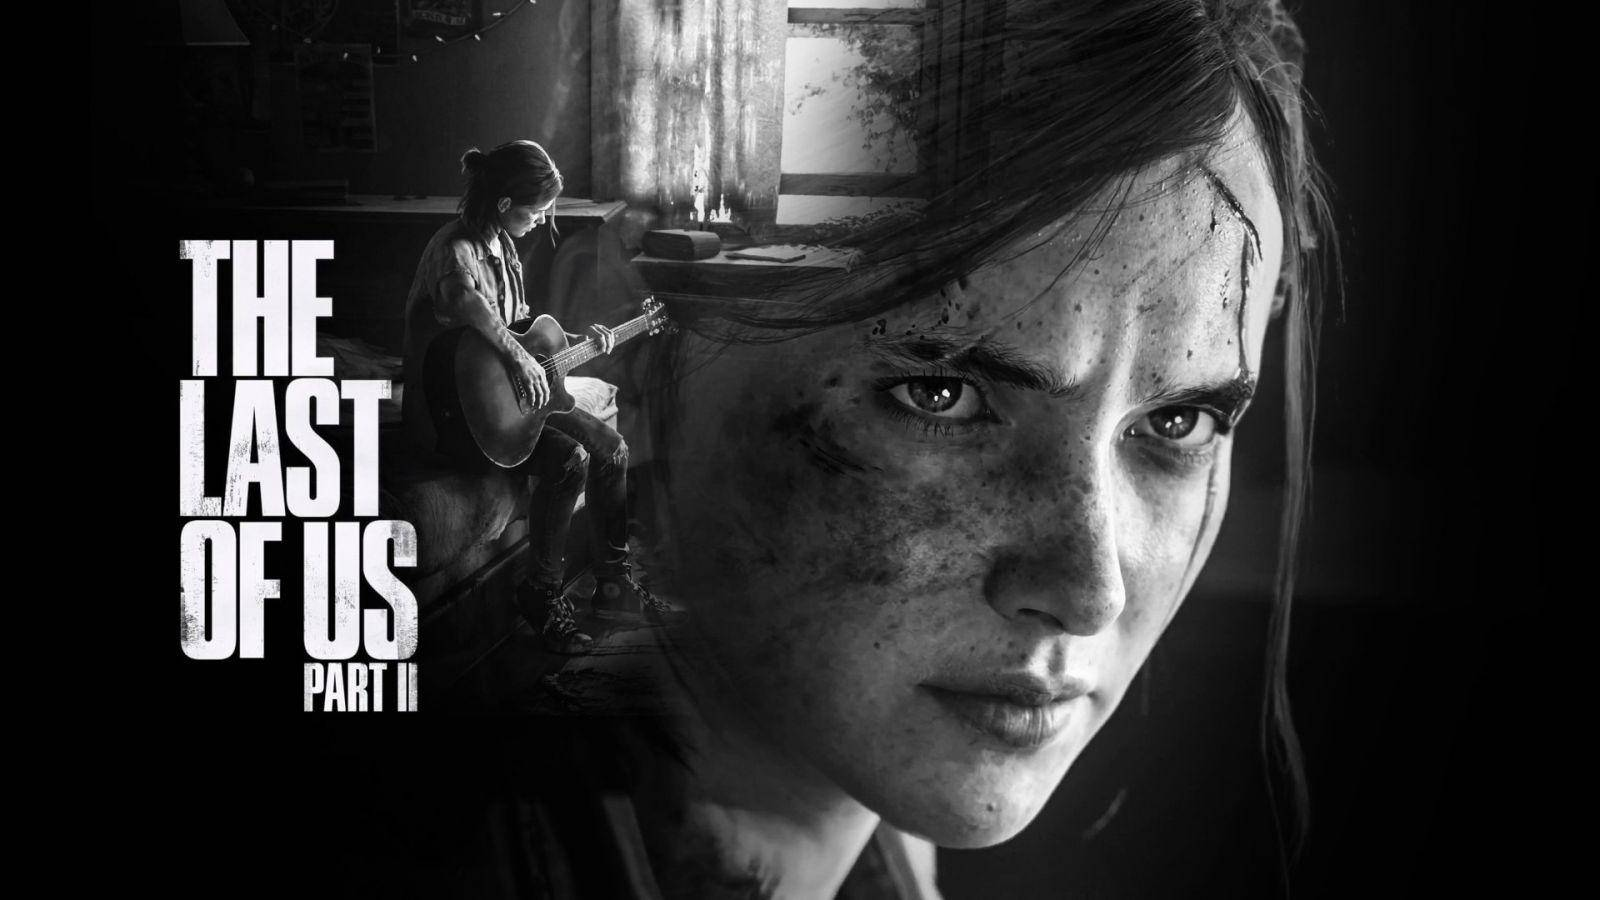 The Last Of Us Part II (Póster)